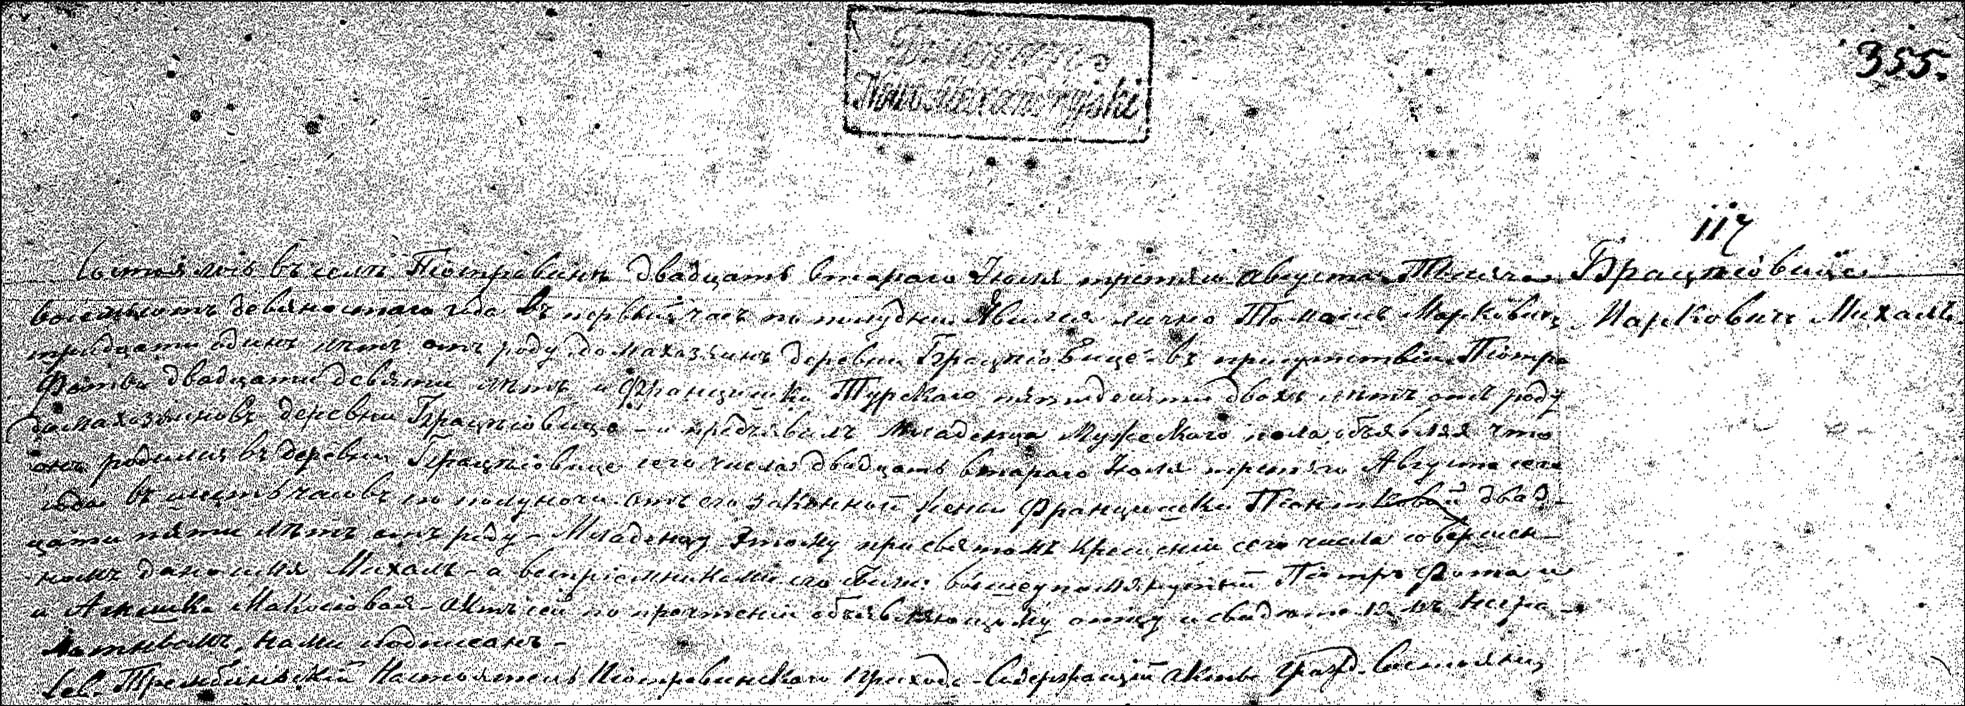 The birth and baptismal record for Michal Markiewicz